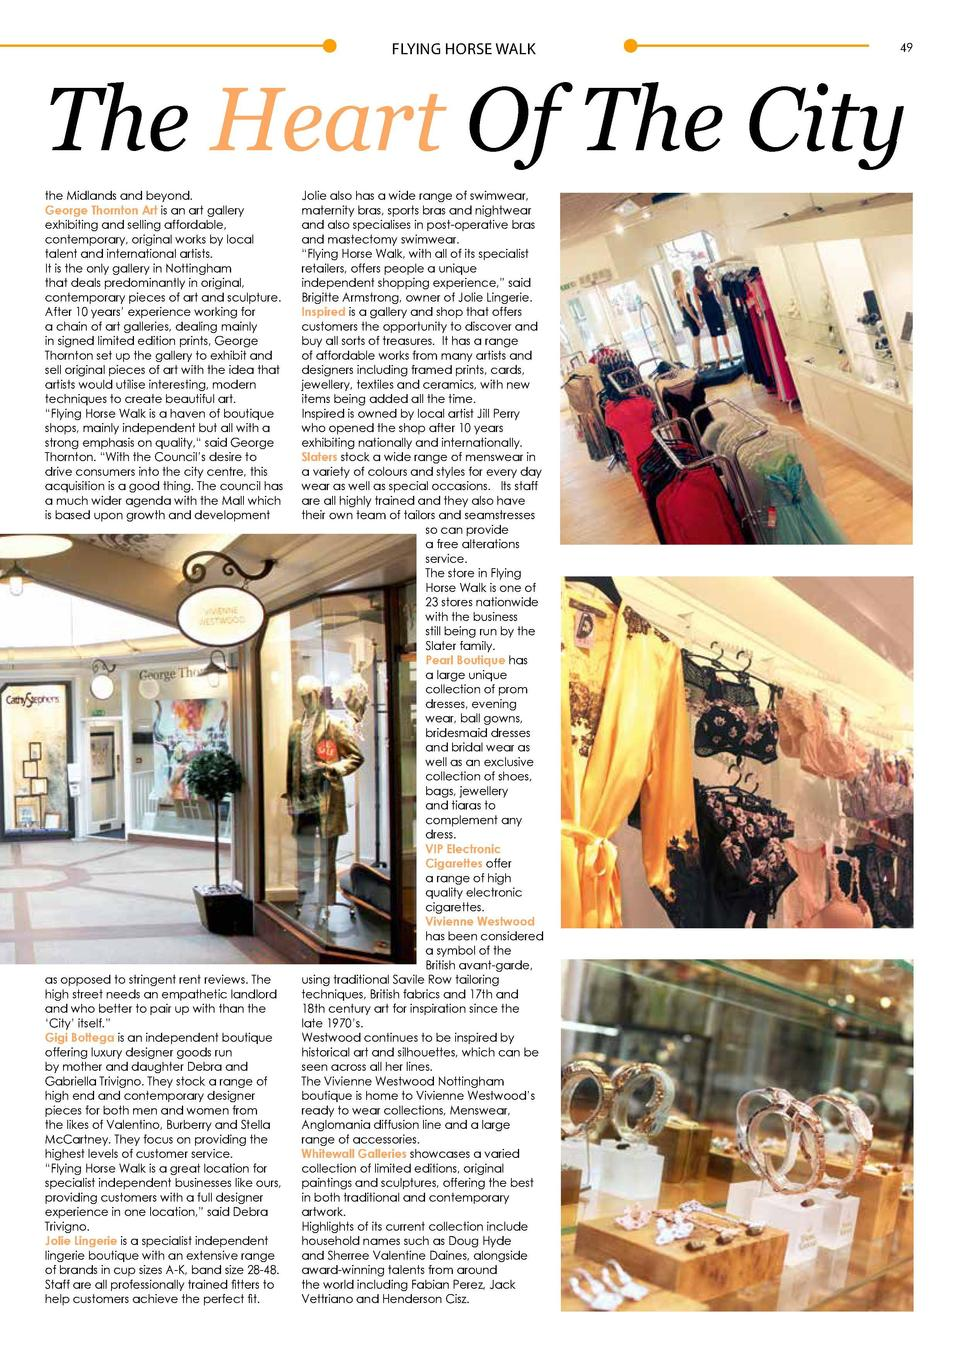 FLYING HORSE WALK  48  Boutique Shopping In  F  lying Horse Walk is a welcome haven away from the bustle of the high stree...